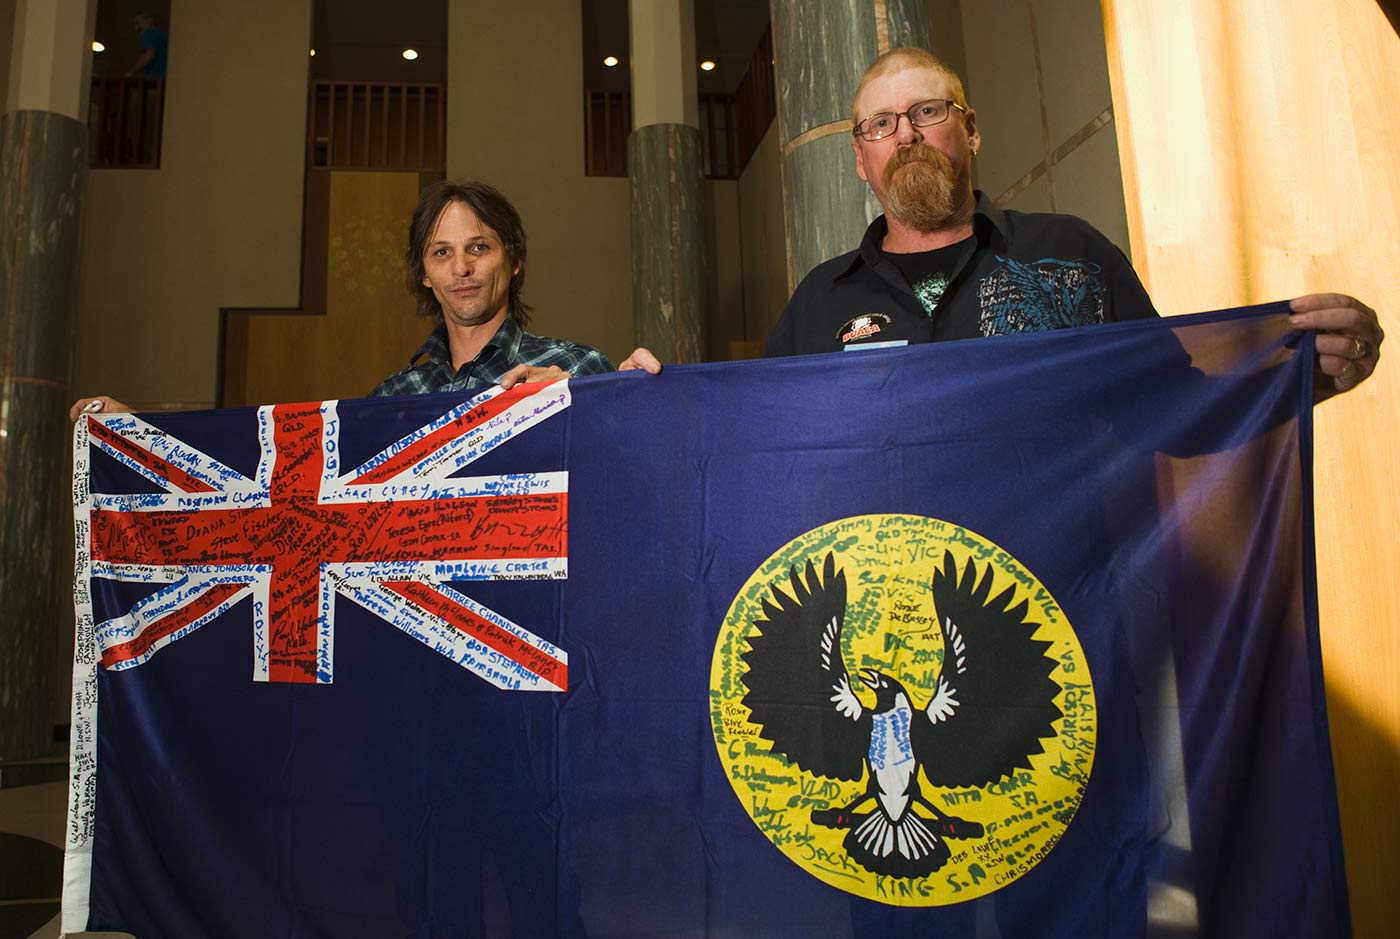 Colour photograph showing two men, standing behind a royal blue flag with ensign and insignia, covered in signatures. - click to view larger image